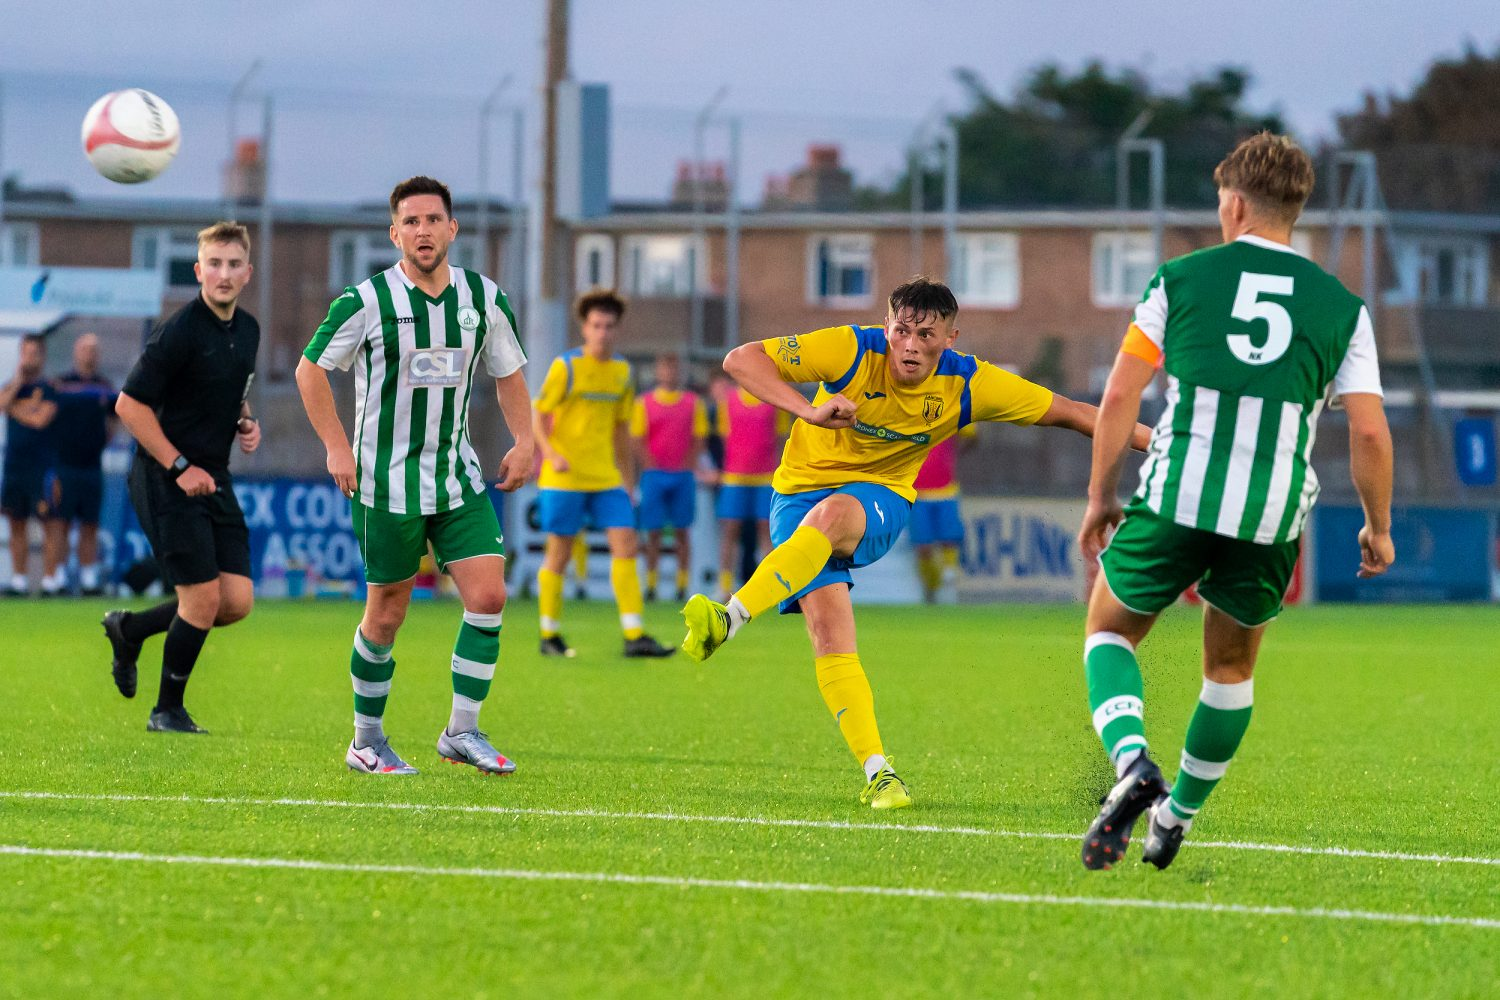 Gallery: Chichester City (H) – Friendly